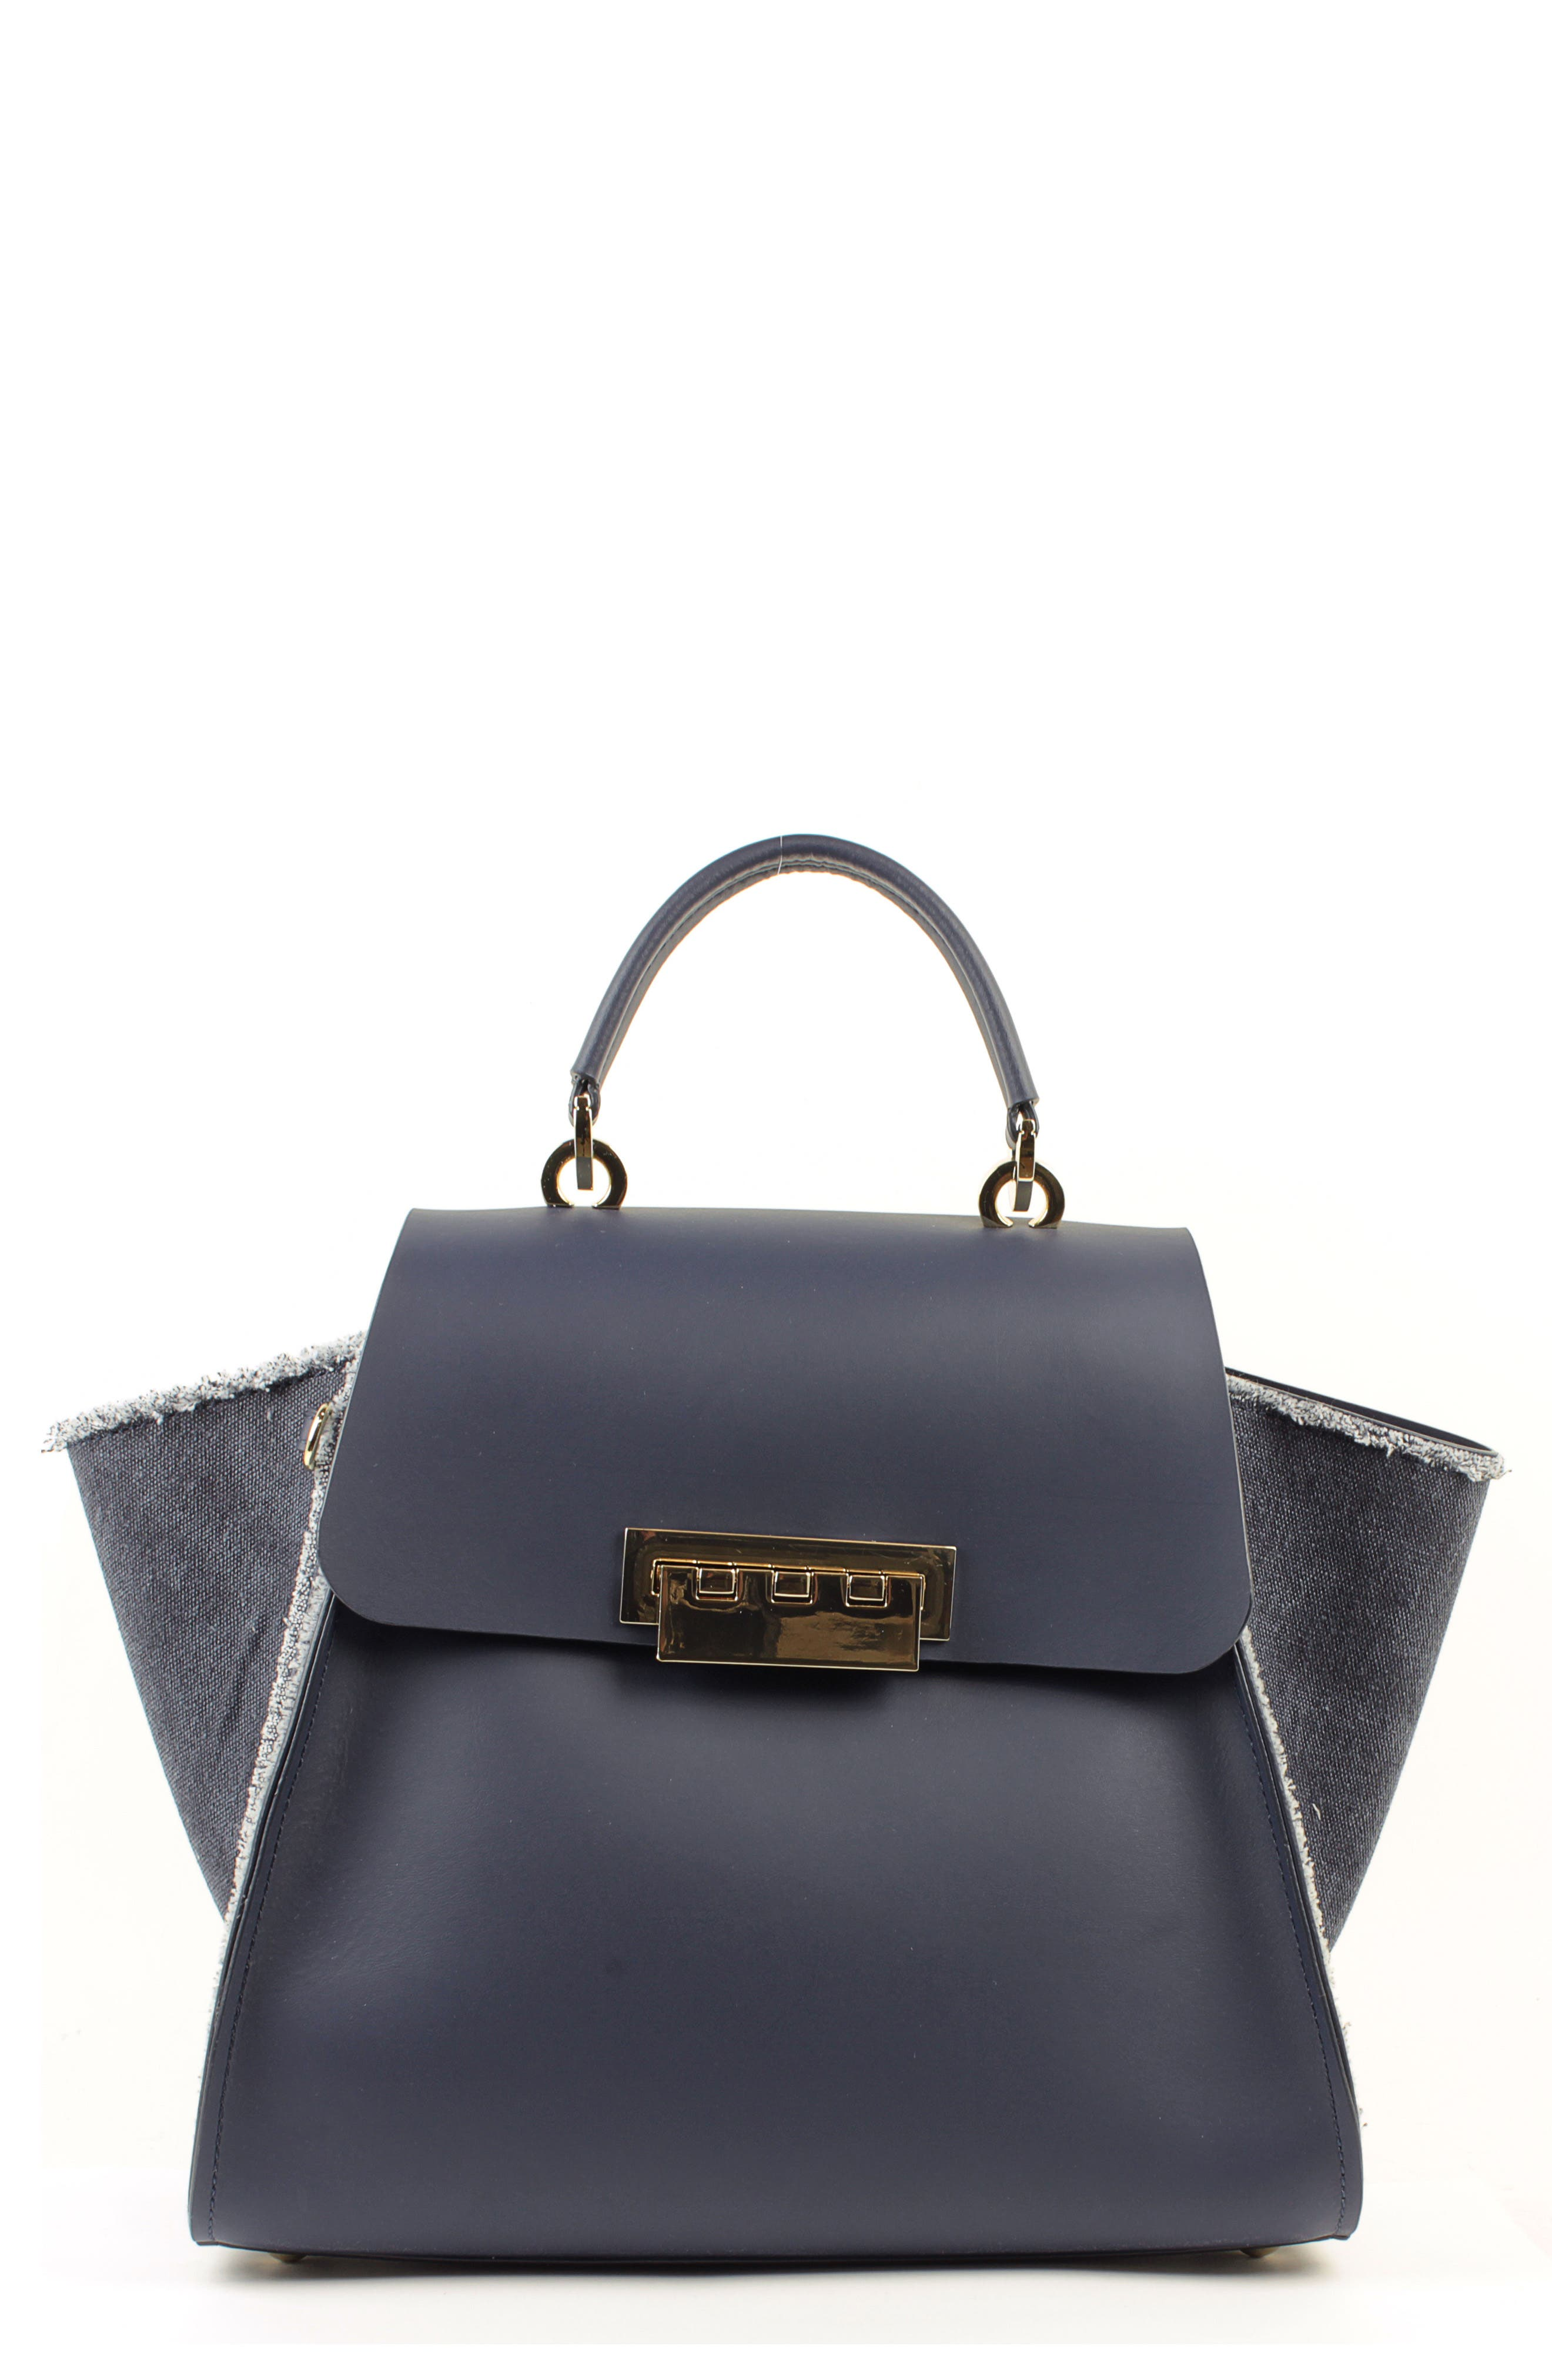 ZAC ZAC POSEN Eartha Iconic Leather Top Handle Satchel